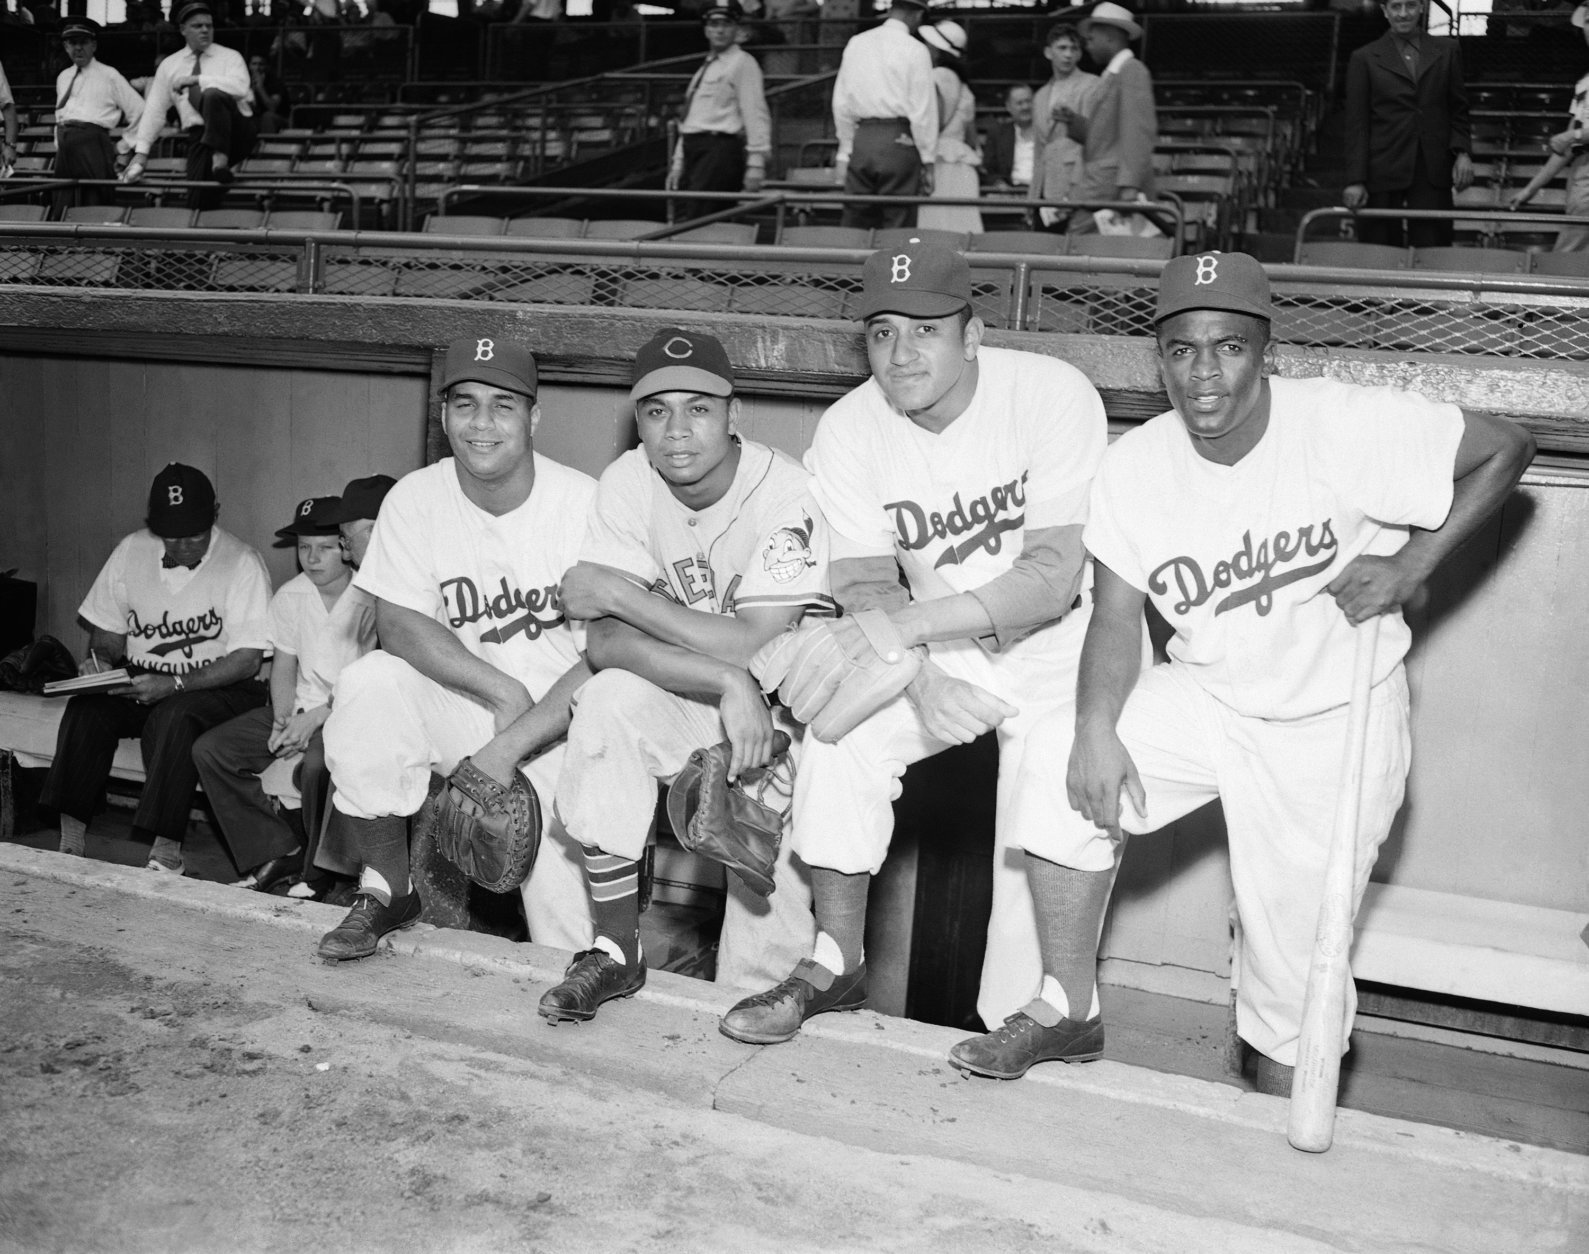 FILE - From left, in a July 12, 1949, file photo, Roy Campanella, Larry Doby, Don Newcombe and Jackie Robinson pose at the 16th annual All-Star Game at Ebbetts Field in Brooklyn, New York. Newcombe, the hard-throwing Brooklyn Dodgers pitcher who was one of the first black players in the major leagues and who went on to win the rookie of the year, Most Valuable Player and Cy Young awards, has died. He was 92. The team confirmed that Newcombe died Tuesday morning, Feb. 19, 2019, after a lengthy illness. (AP Photo/File)